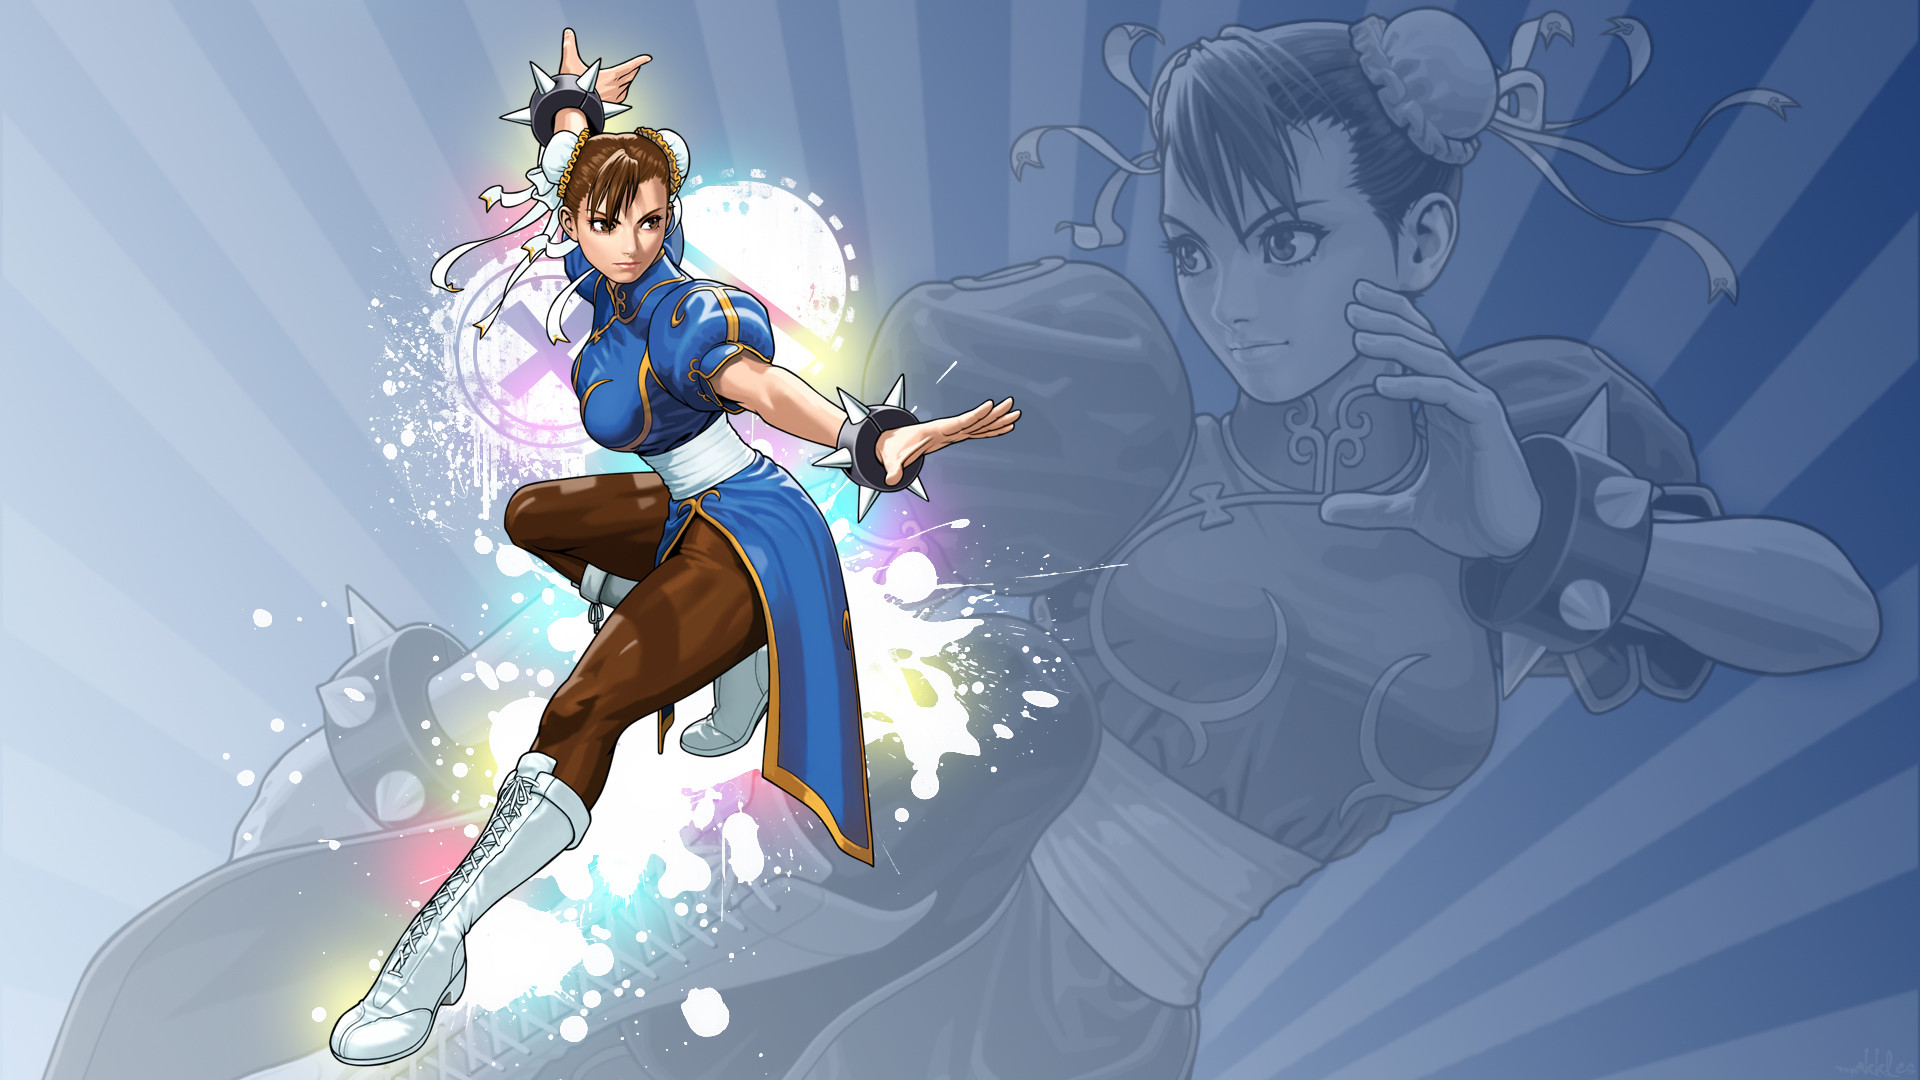 chun-li street fighter tatsunoko vs capcom best widescreen HD .